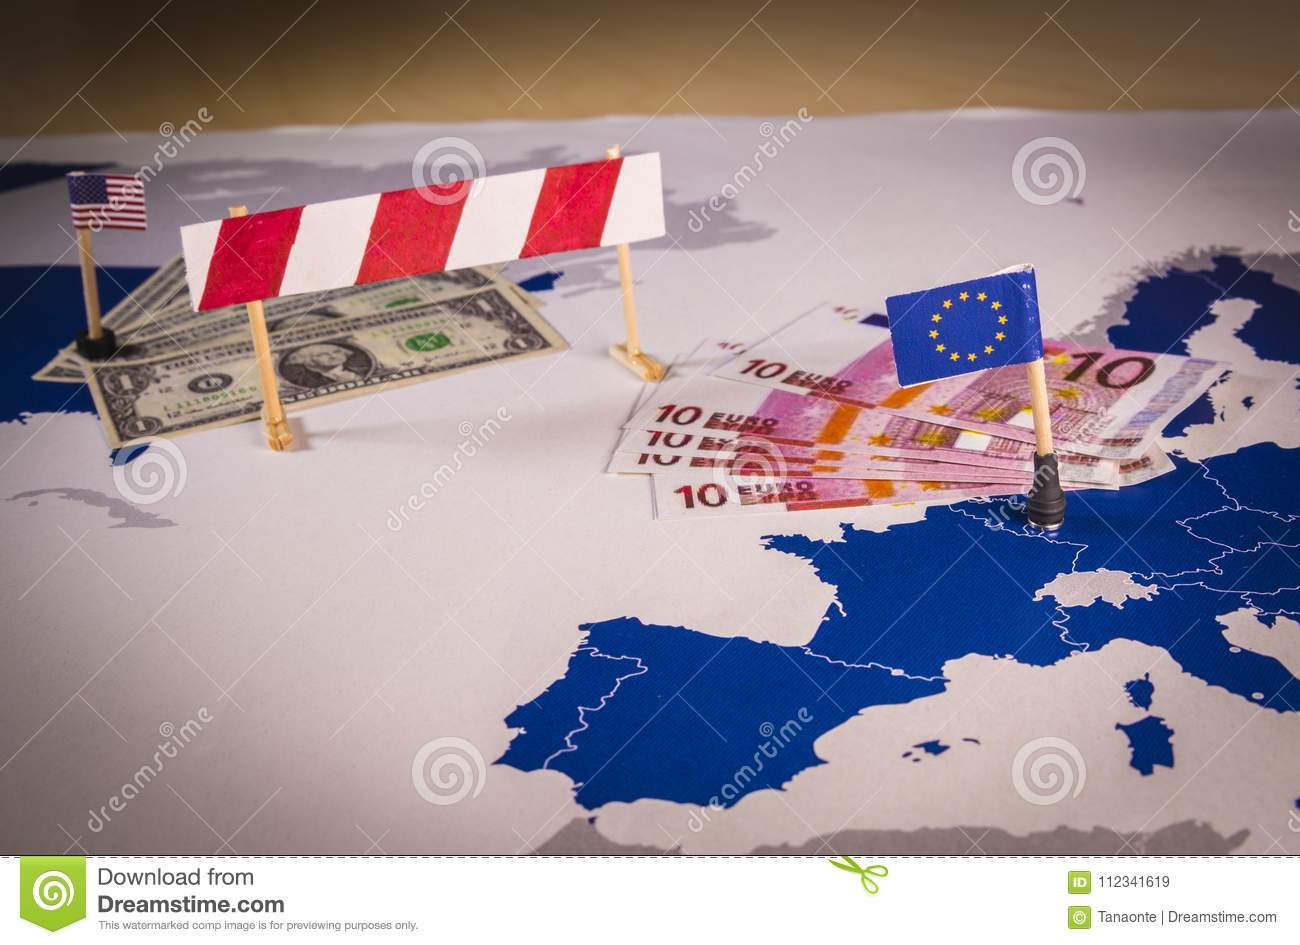 Map of america and eu separated with a barrier stock image image royalty free stock photo gumiabroncs Image collections